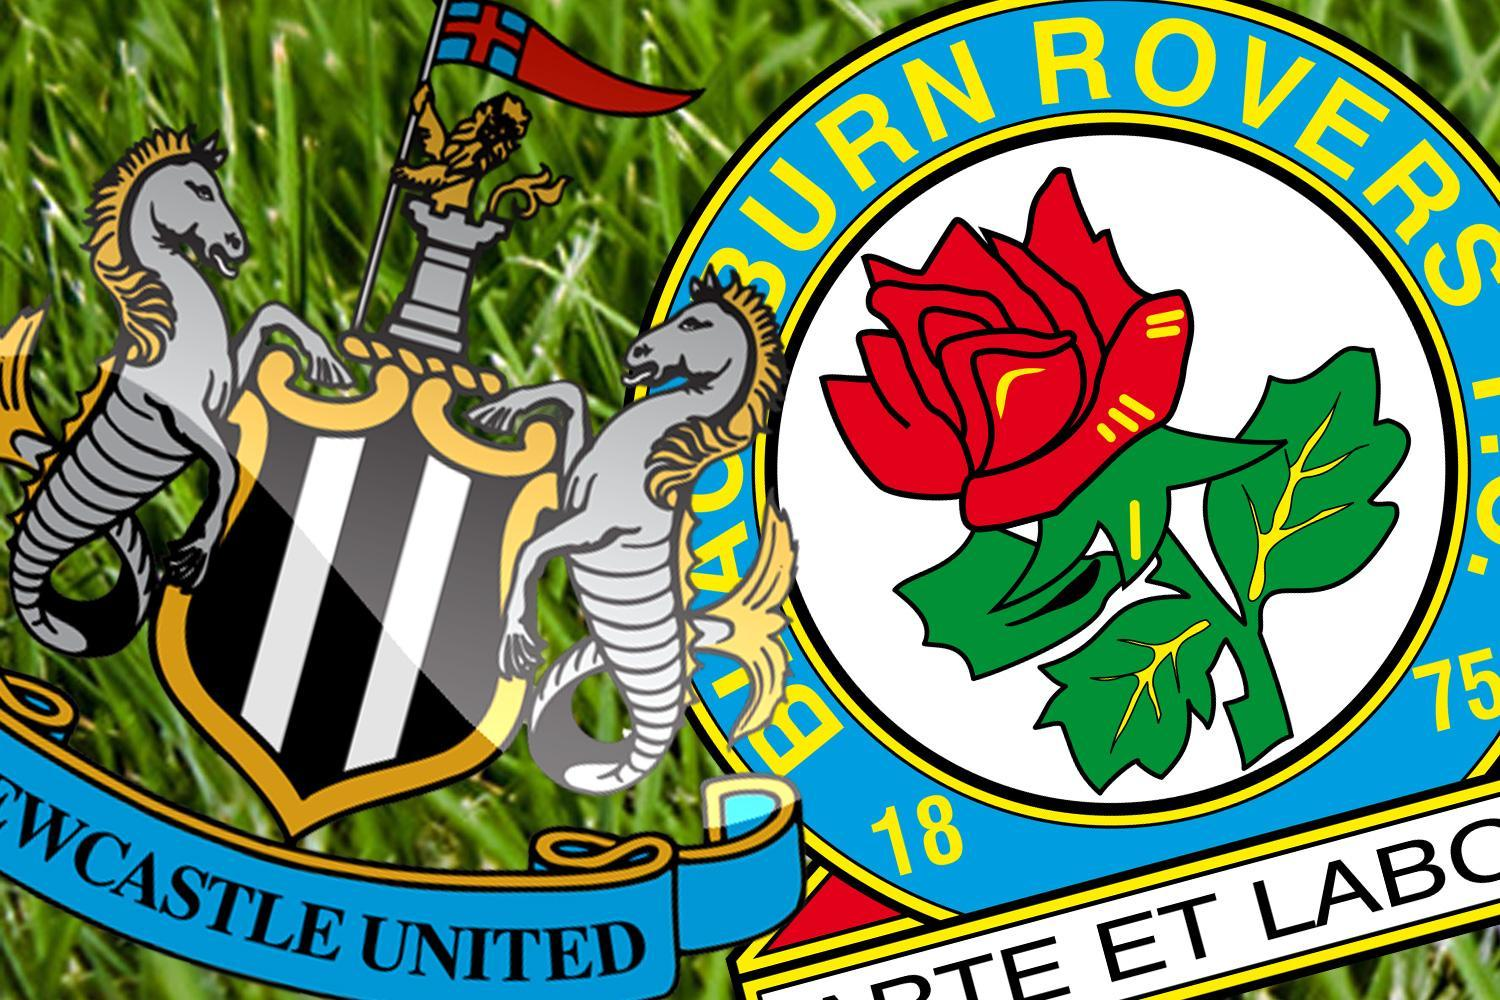 Newcastle 0-1 Blackburn LIVE SCORE: Latest updates and commentary for the FA Cup tie